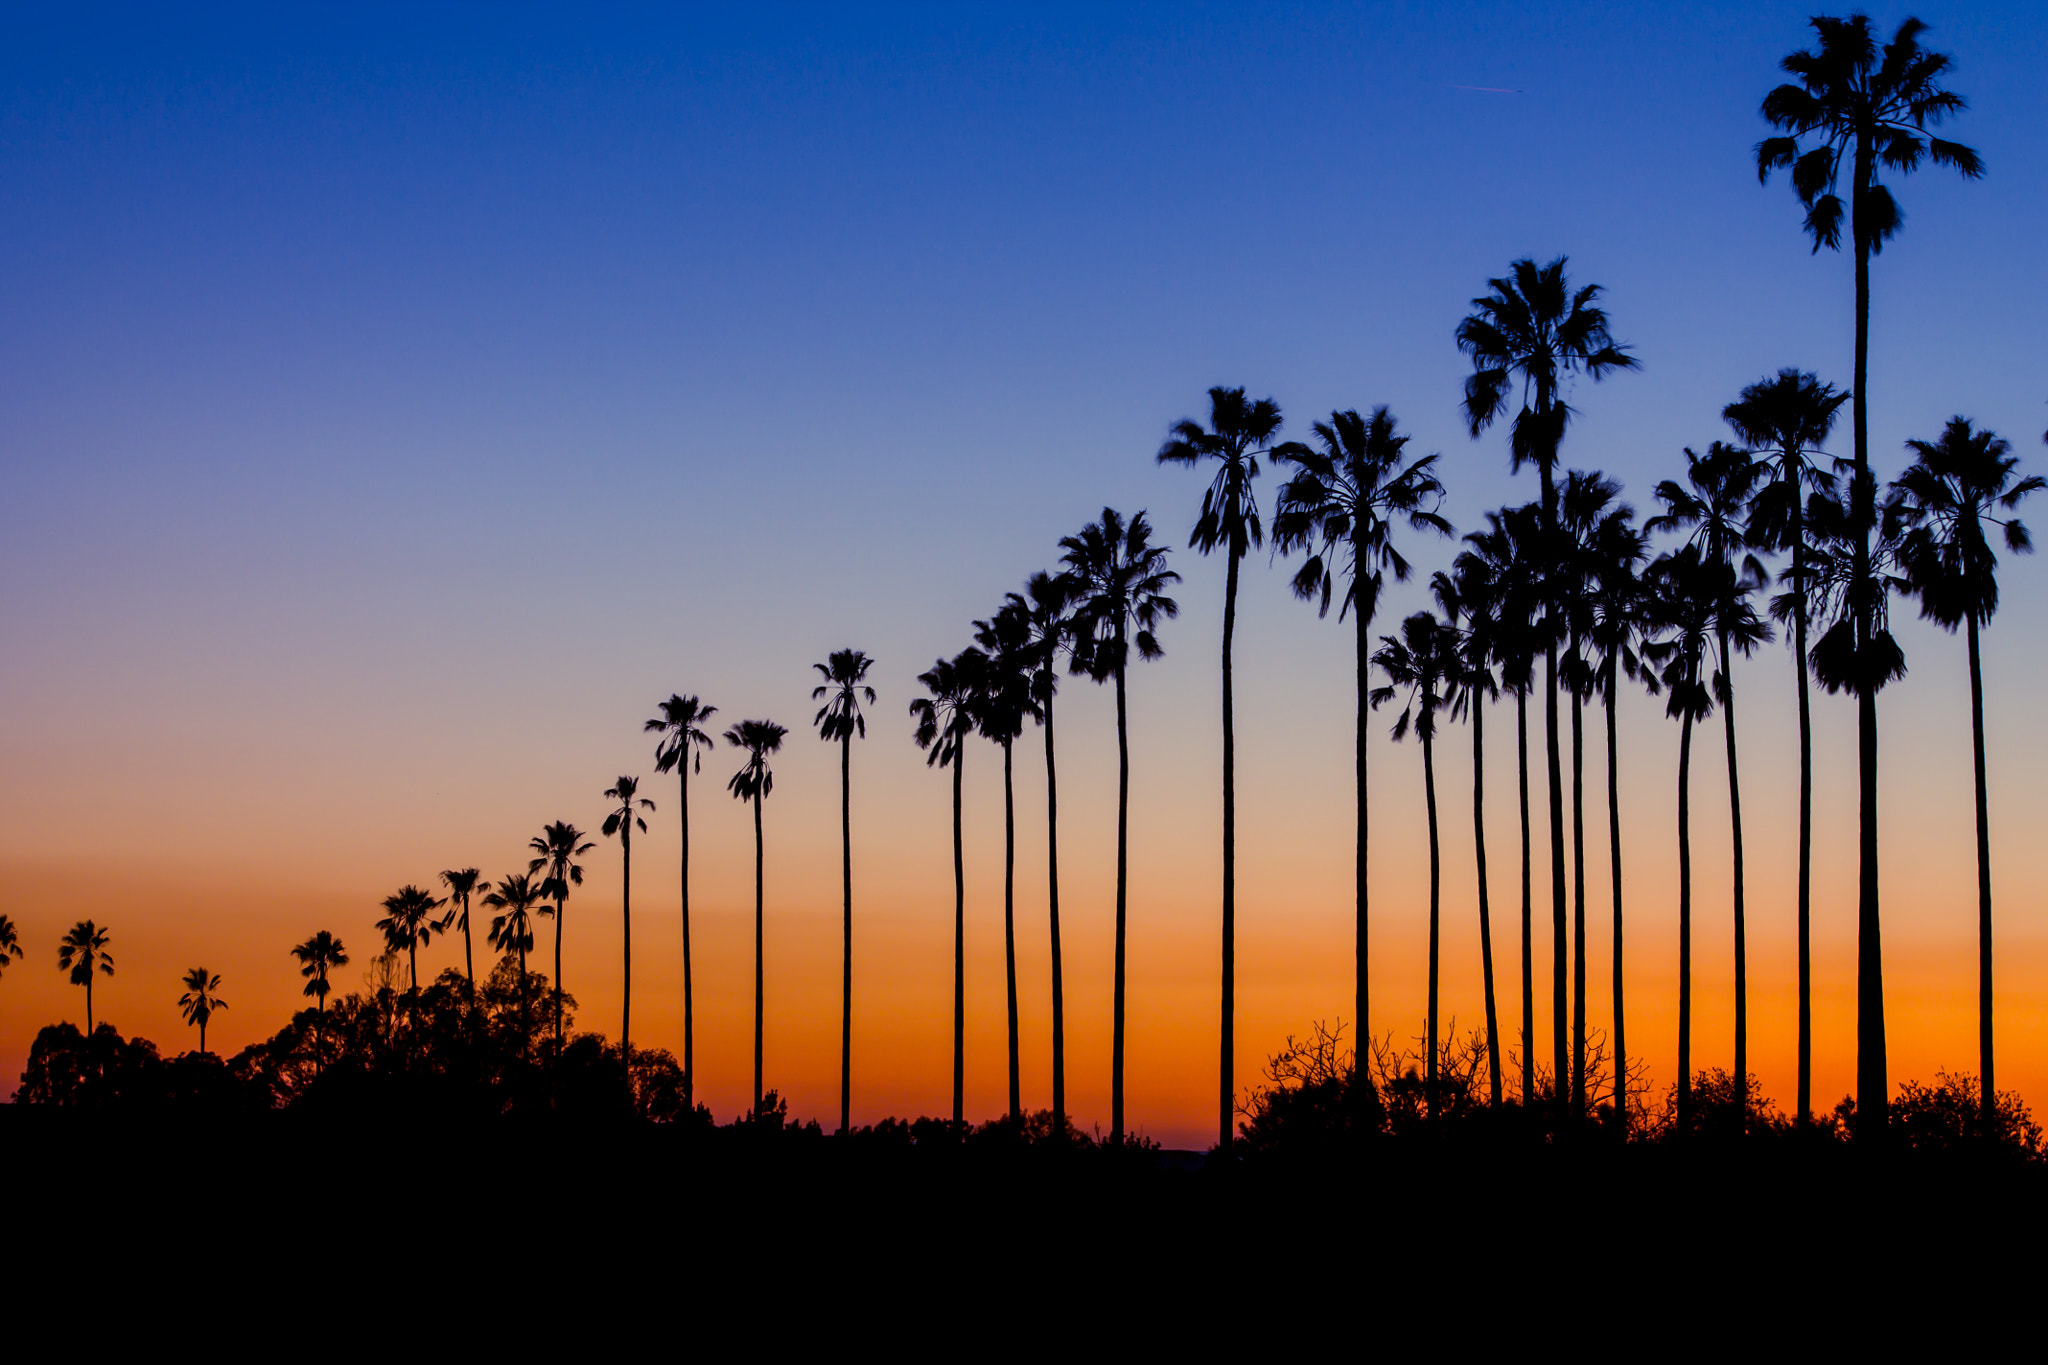 Photograph Palm Trees at Sunset by Chris Meier on 500px